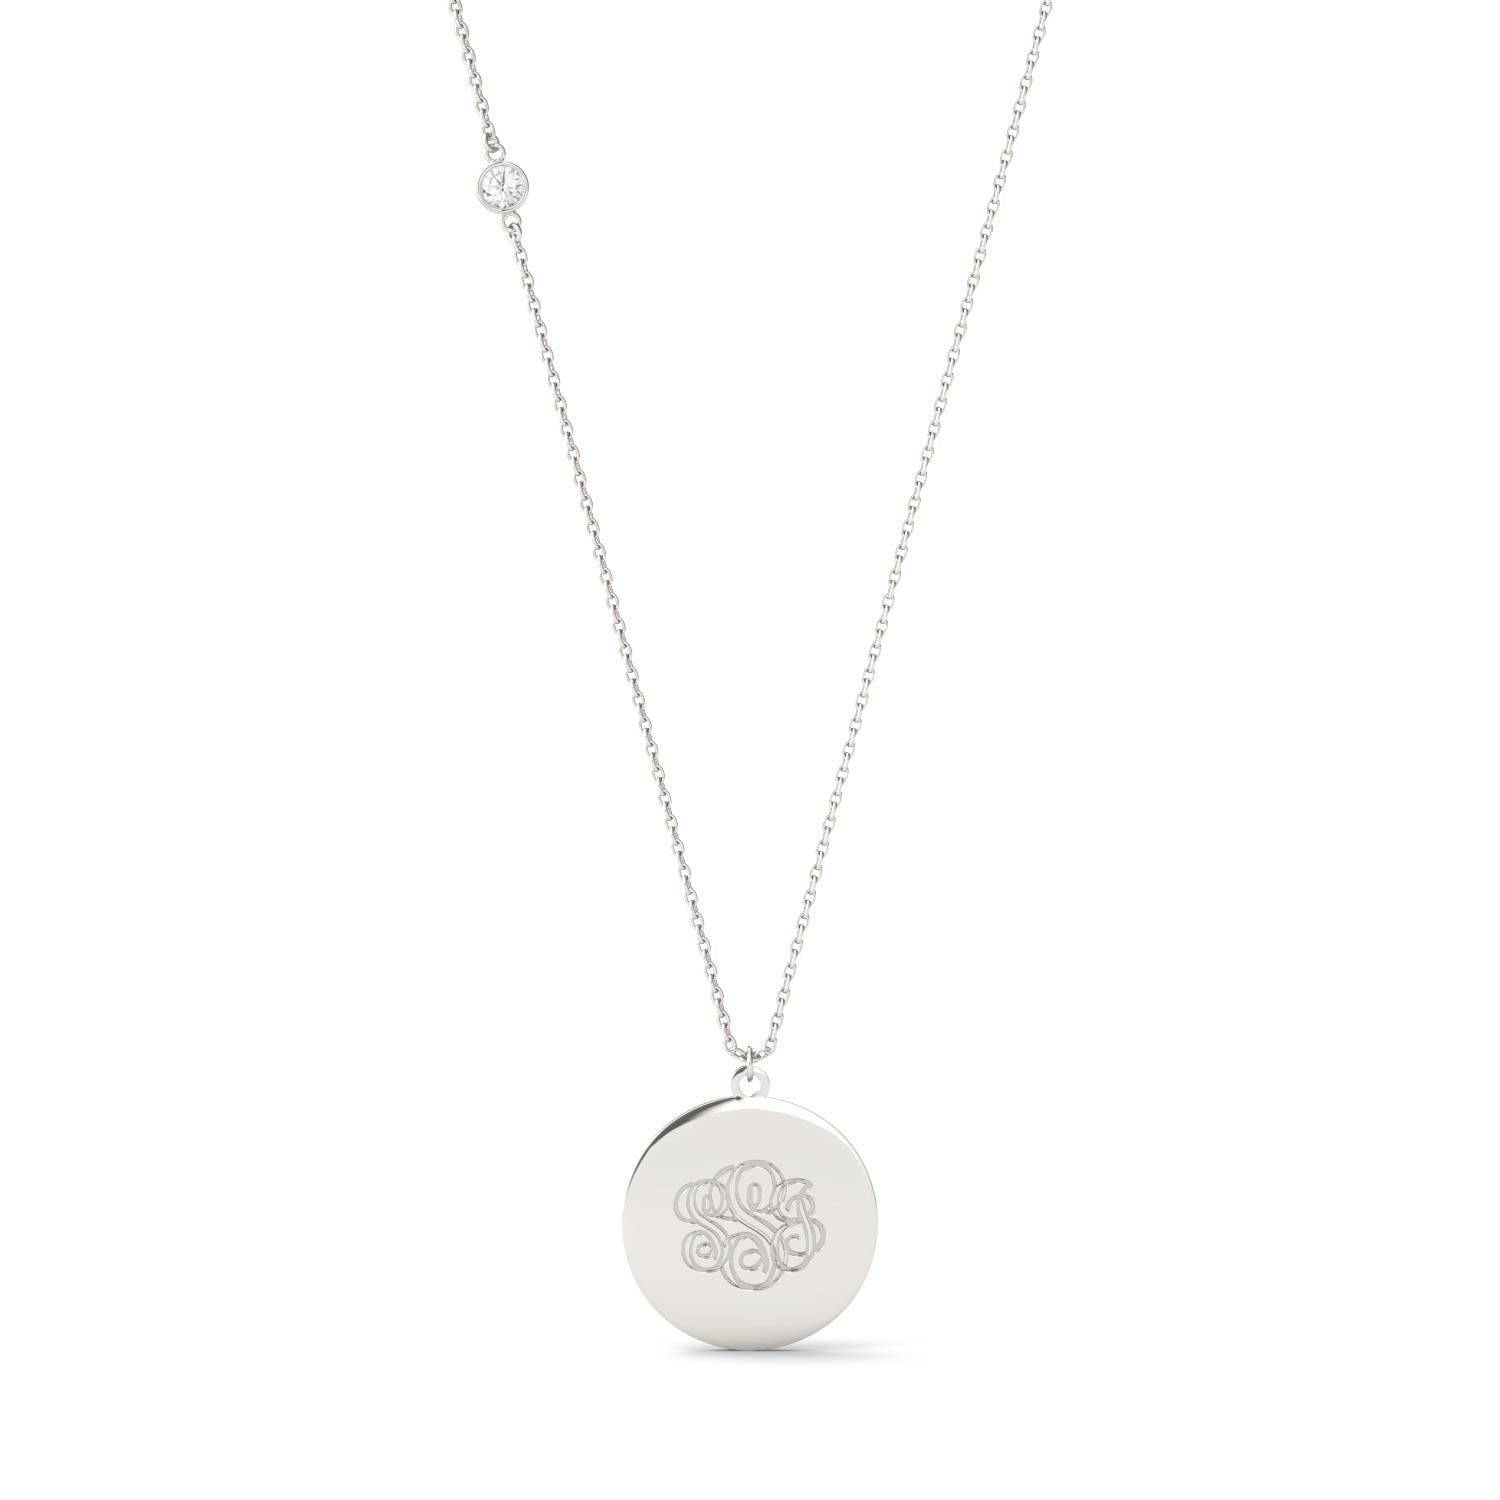 Charles & Colvard Personalized Circle Shaped Monogram Necklace White Gold in 925 White Silver, 0.10CTW Round Forever One Moissanite Accent Stones Charles & Colvard  - White Gold - Size: One Size